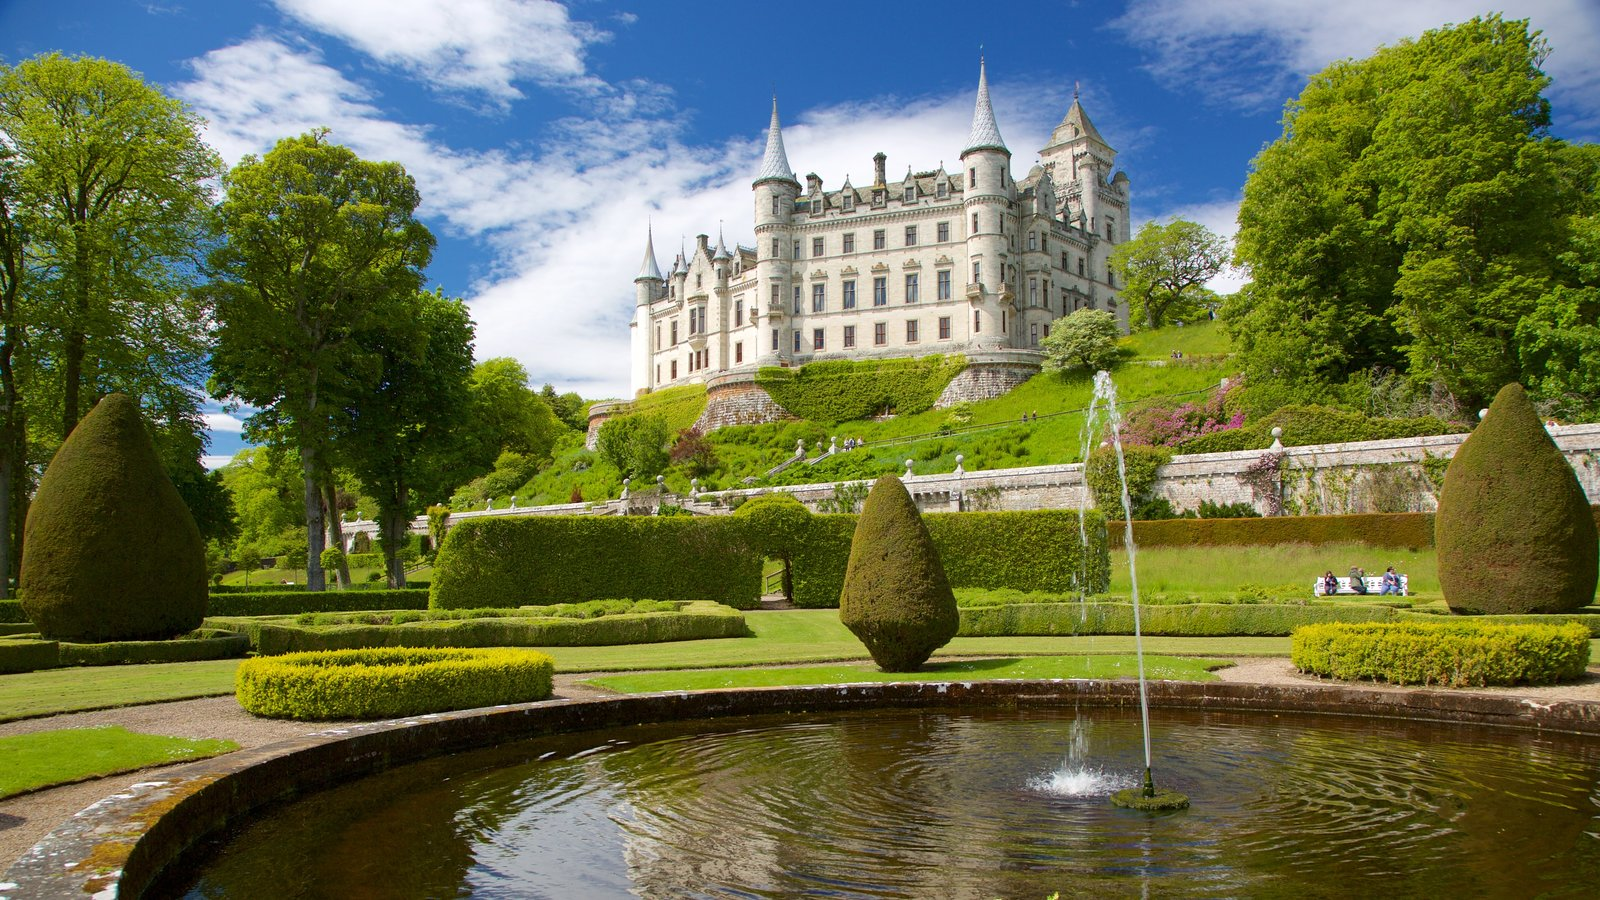 Dunrobin Castle showing chateau or palace, heritage elements and a park